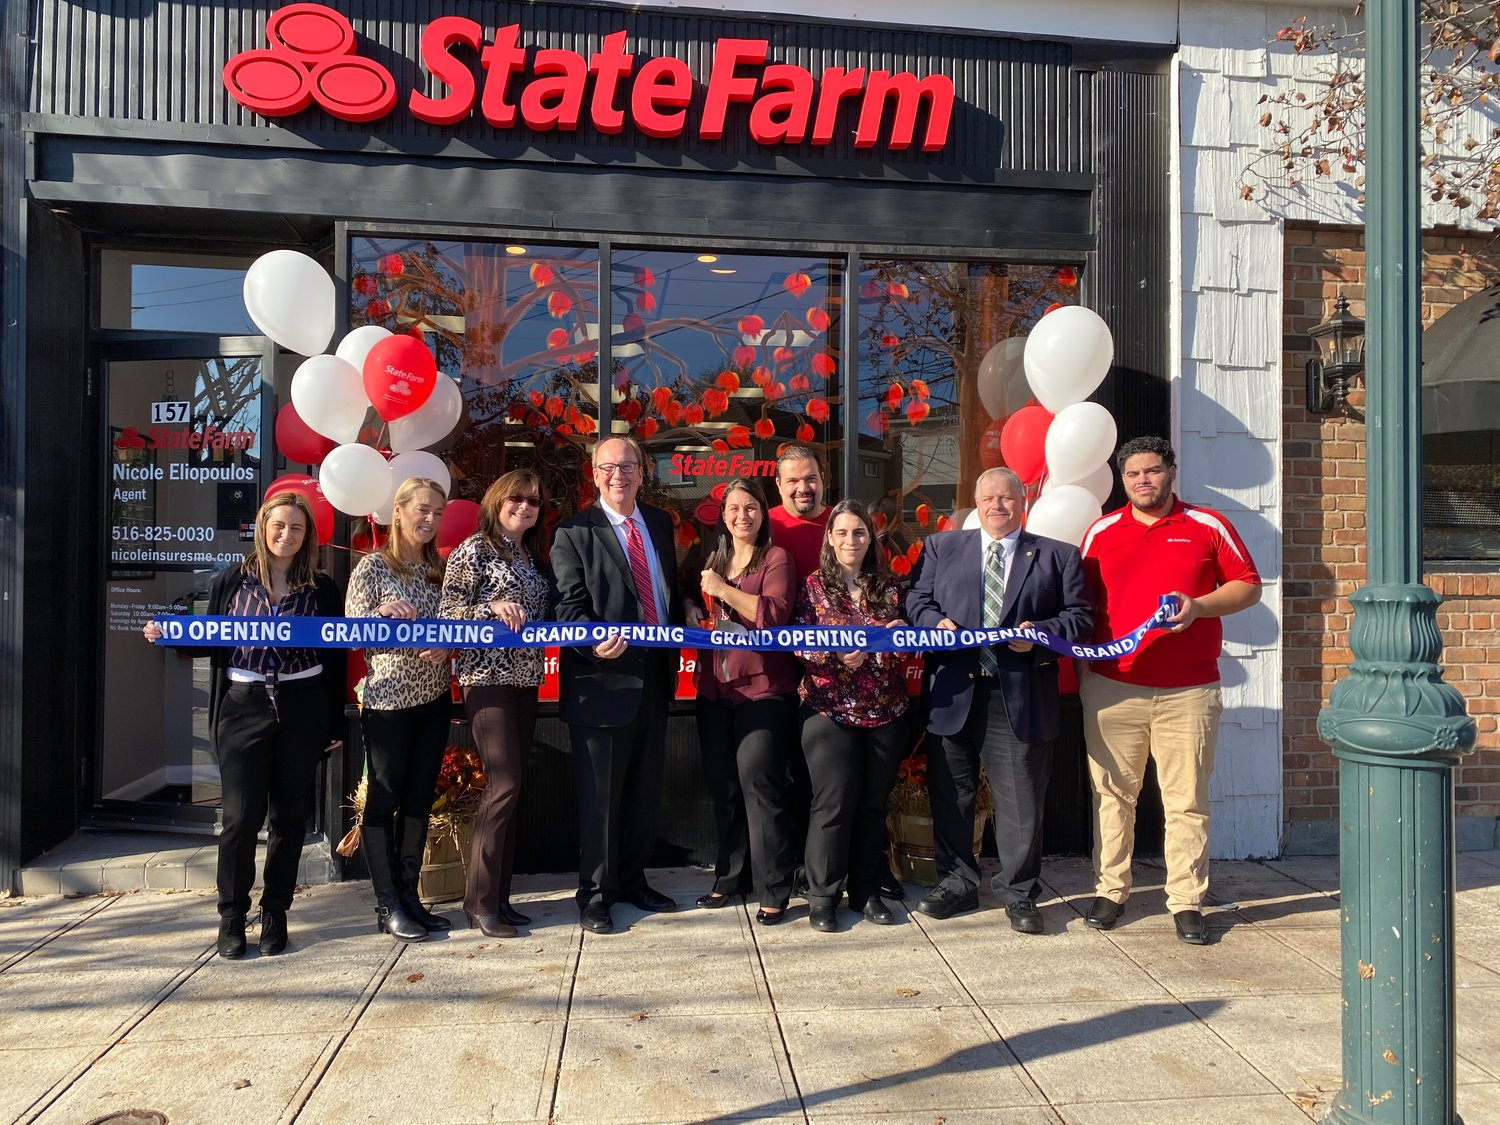 Celebrating the opening of a State Farm office in Valley Stream were from left Shana Milillo, Carolyn Argento and Heather Norman, both of Coach Realtors, HWBA President David Friedman, owner/agent Nicole Eliopoulos, her husband Jason Eliopoulos, Anastasia Aristotle, Larry Lombardo, an assistant to County Legislator Bill Gaylor and Miguel Reyes.